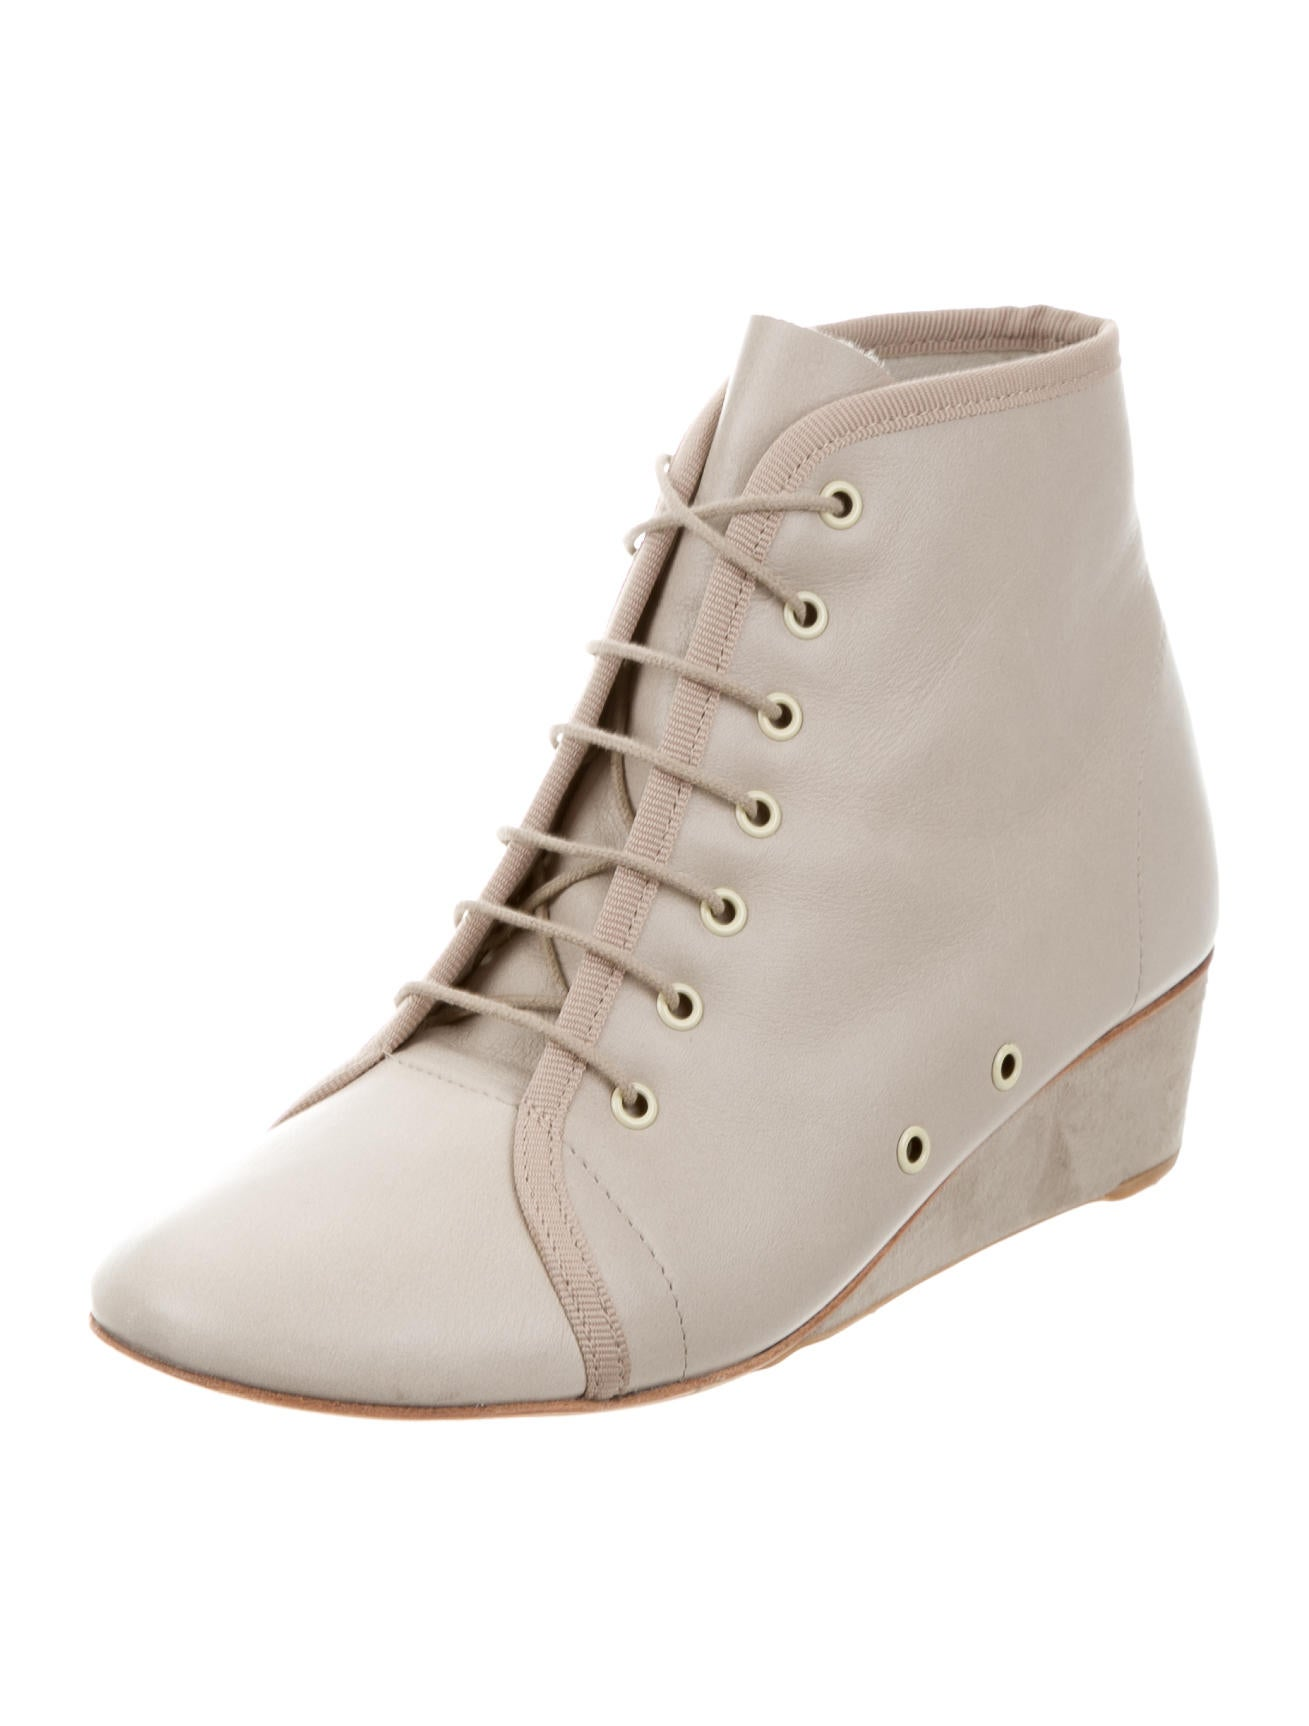 repetto lace up wedge booties shoes rep21320 the